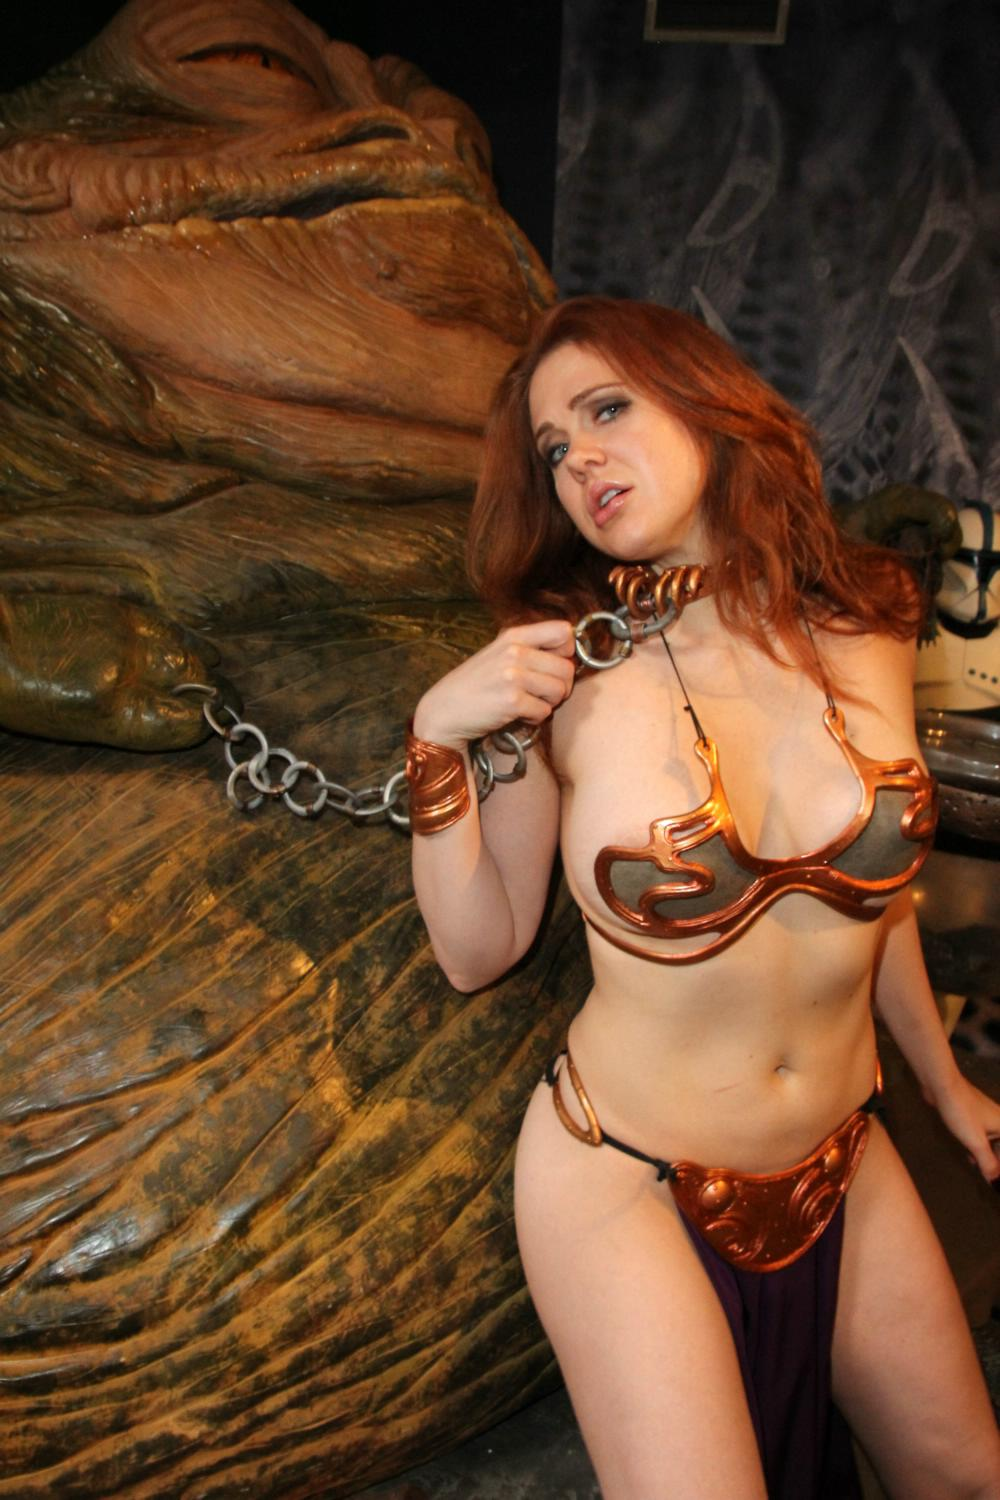 image Amber michaels tied by oak